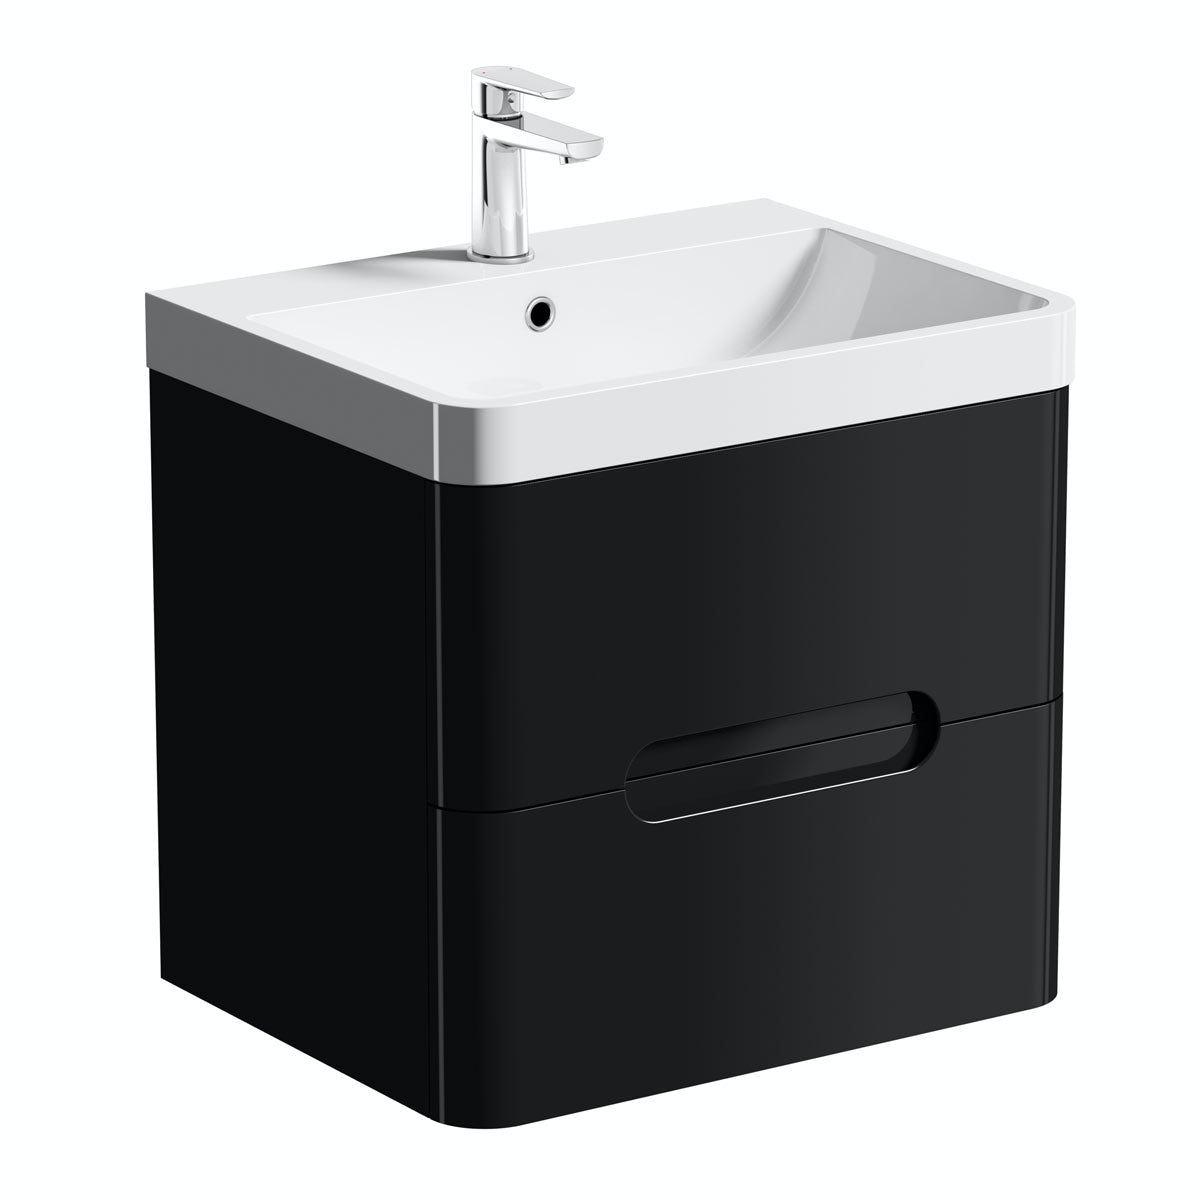 Mode Planet Black Wall Hung Vanity Drawer Unit And Basin 600mm Victoriaplum Com